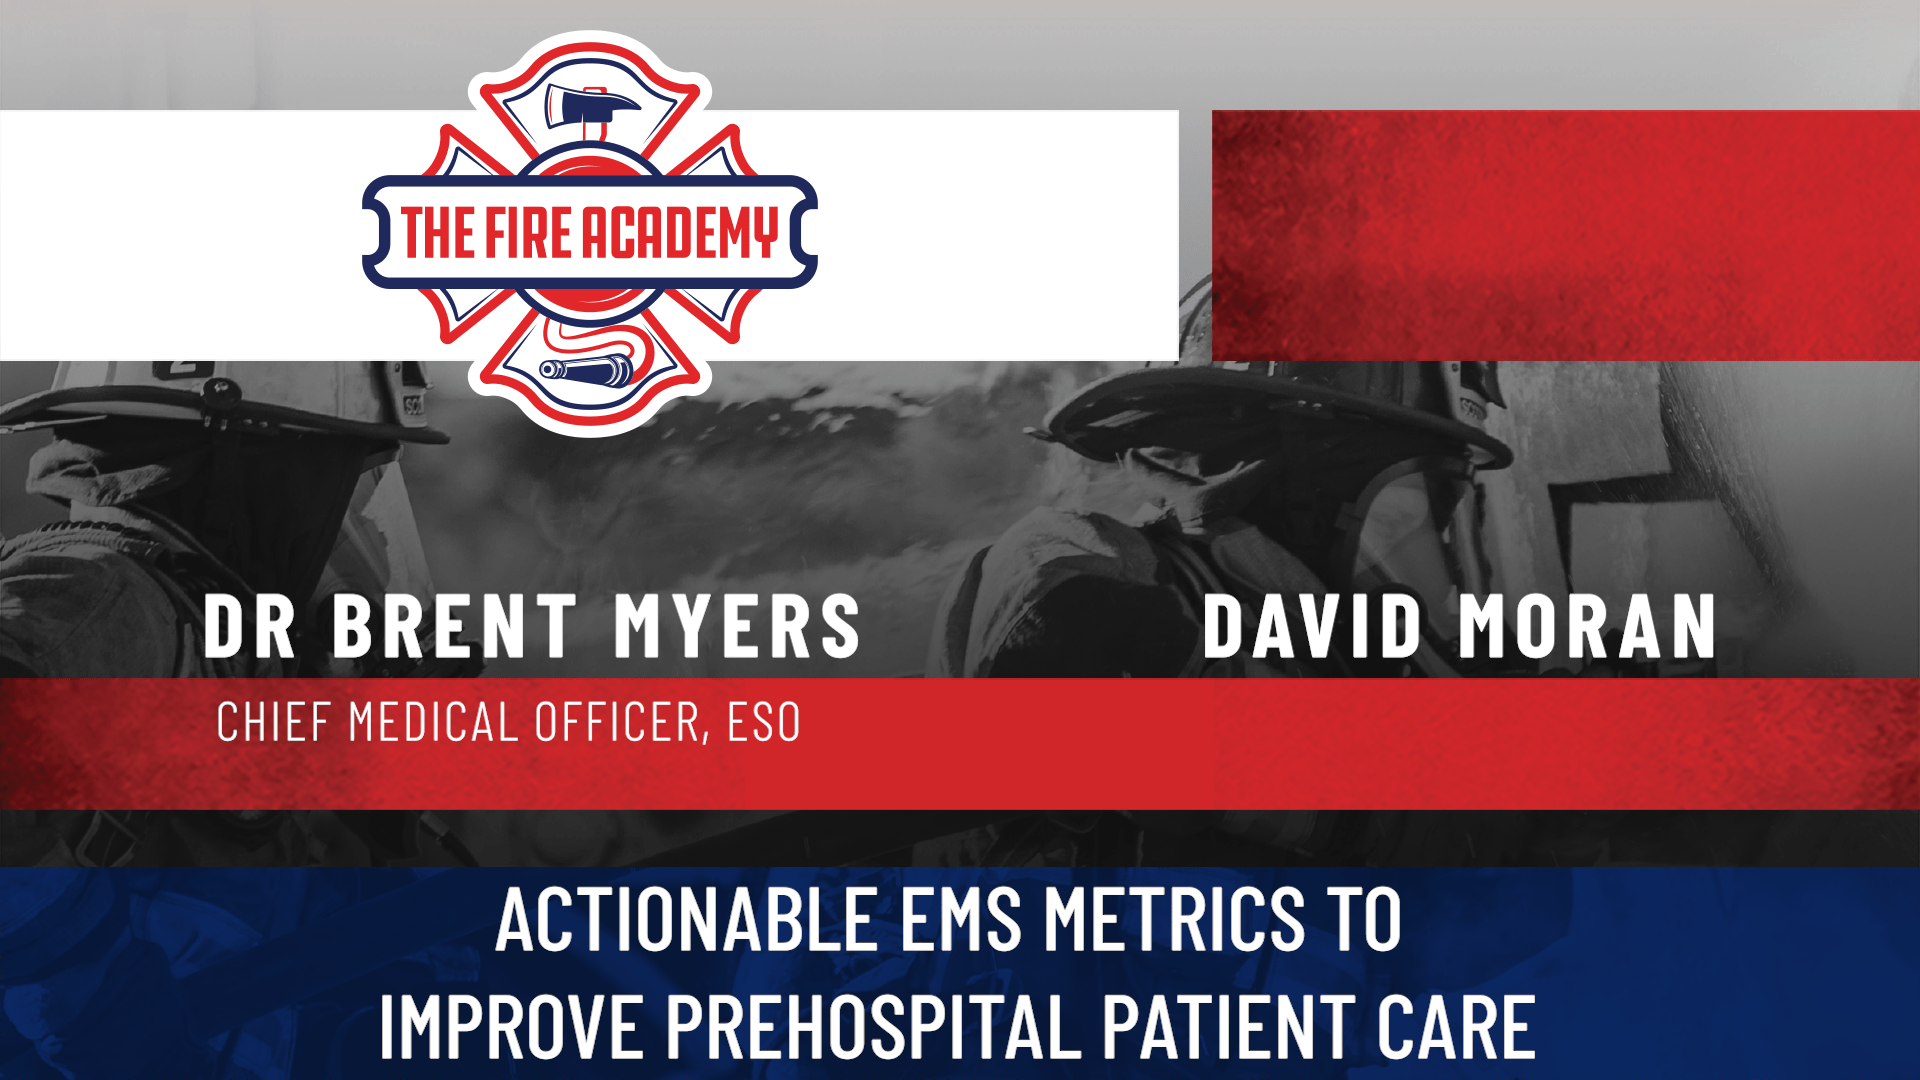 Actionable EMS Metrics to Improve Prehospital Patient Care